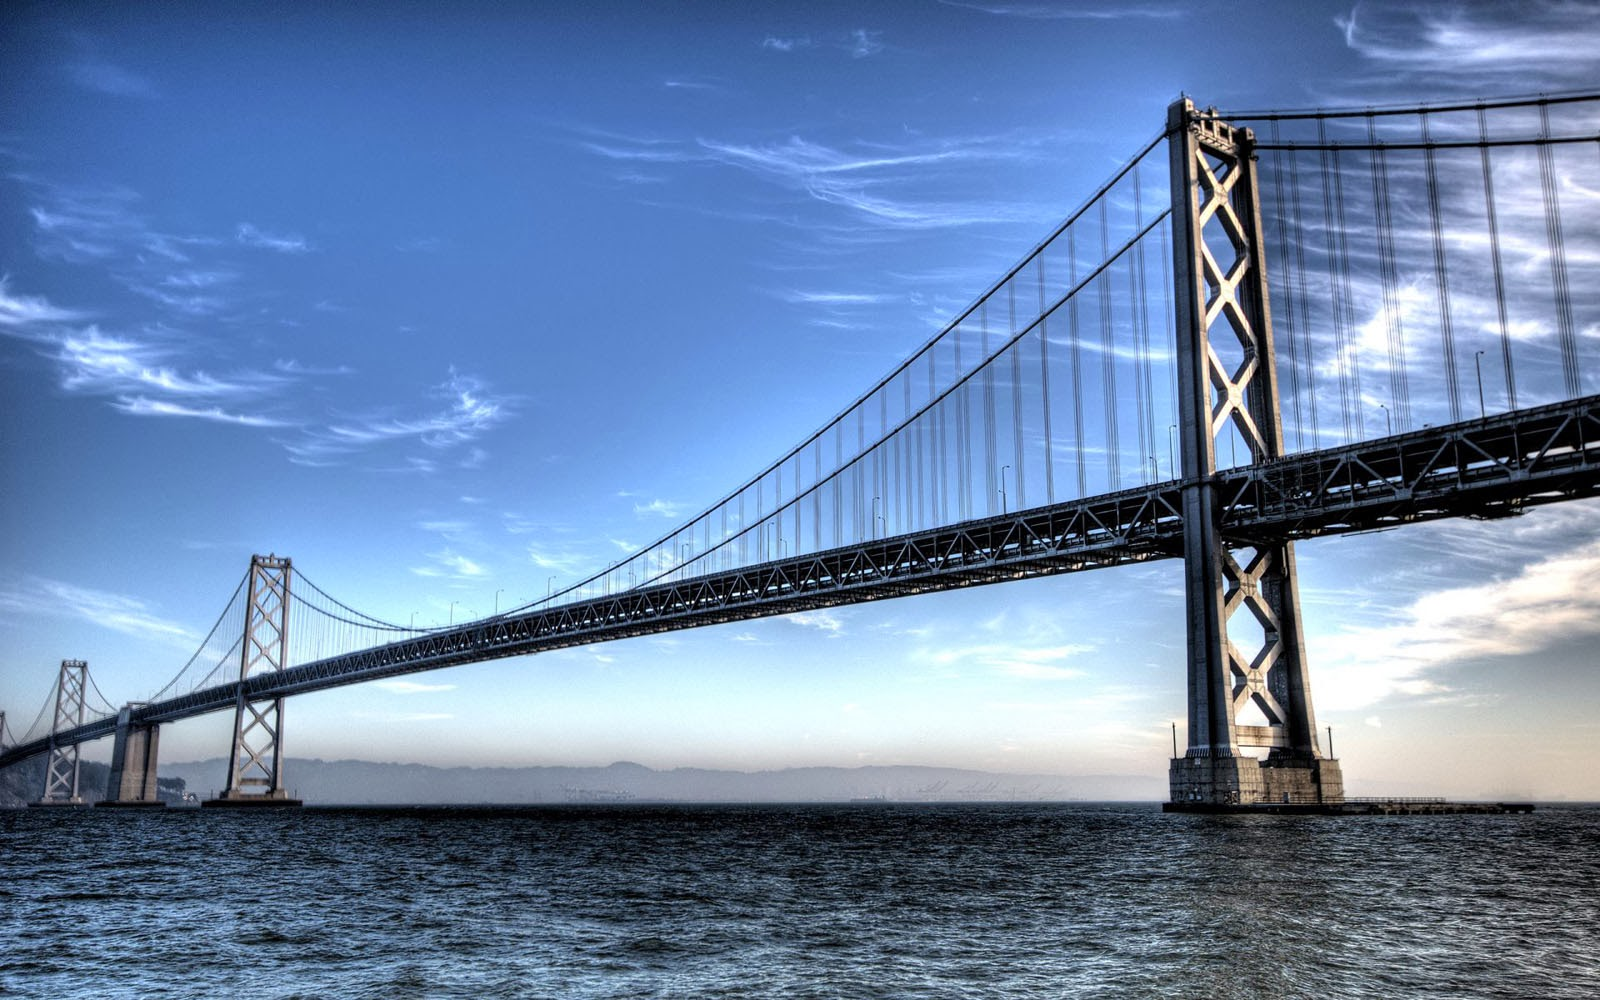 Wallpapers san francisco bay bridge wallpapers for Images of the best